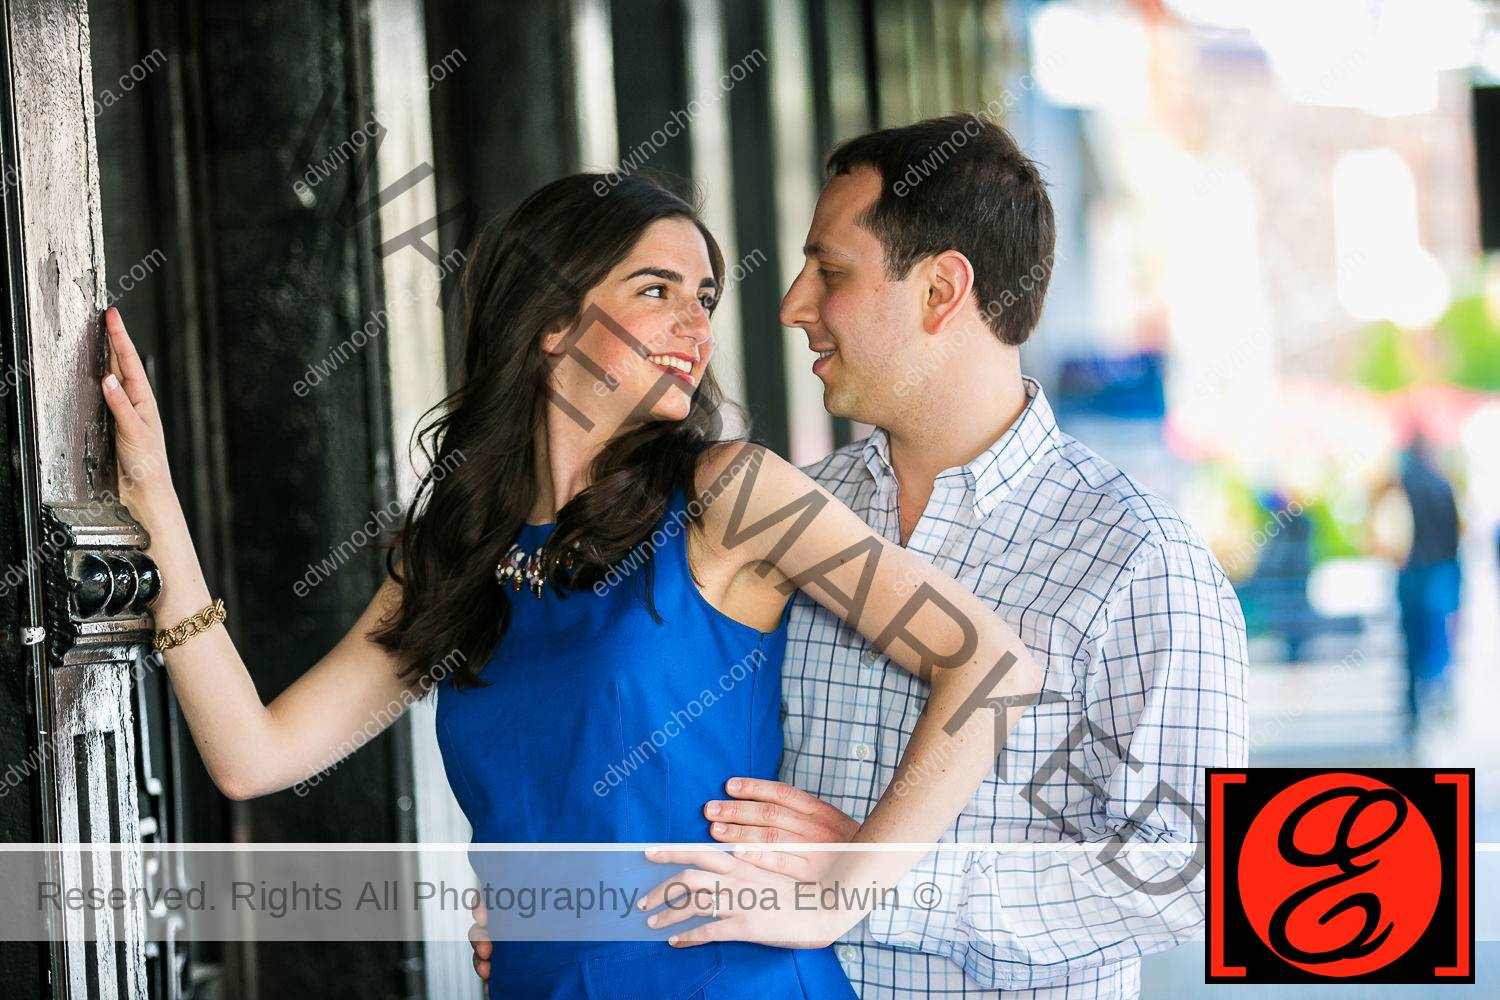 Bonni and David Engagement Photo Session